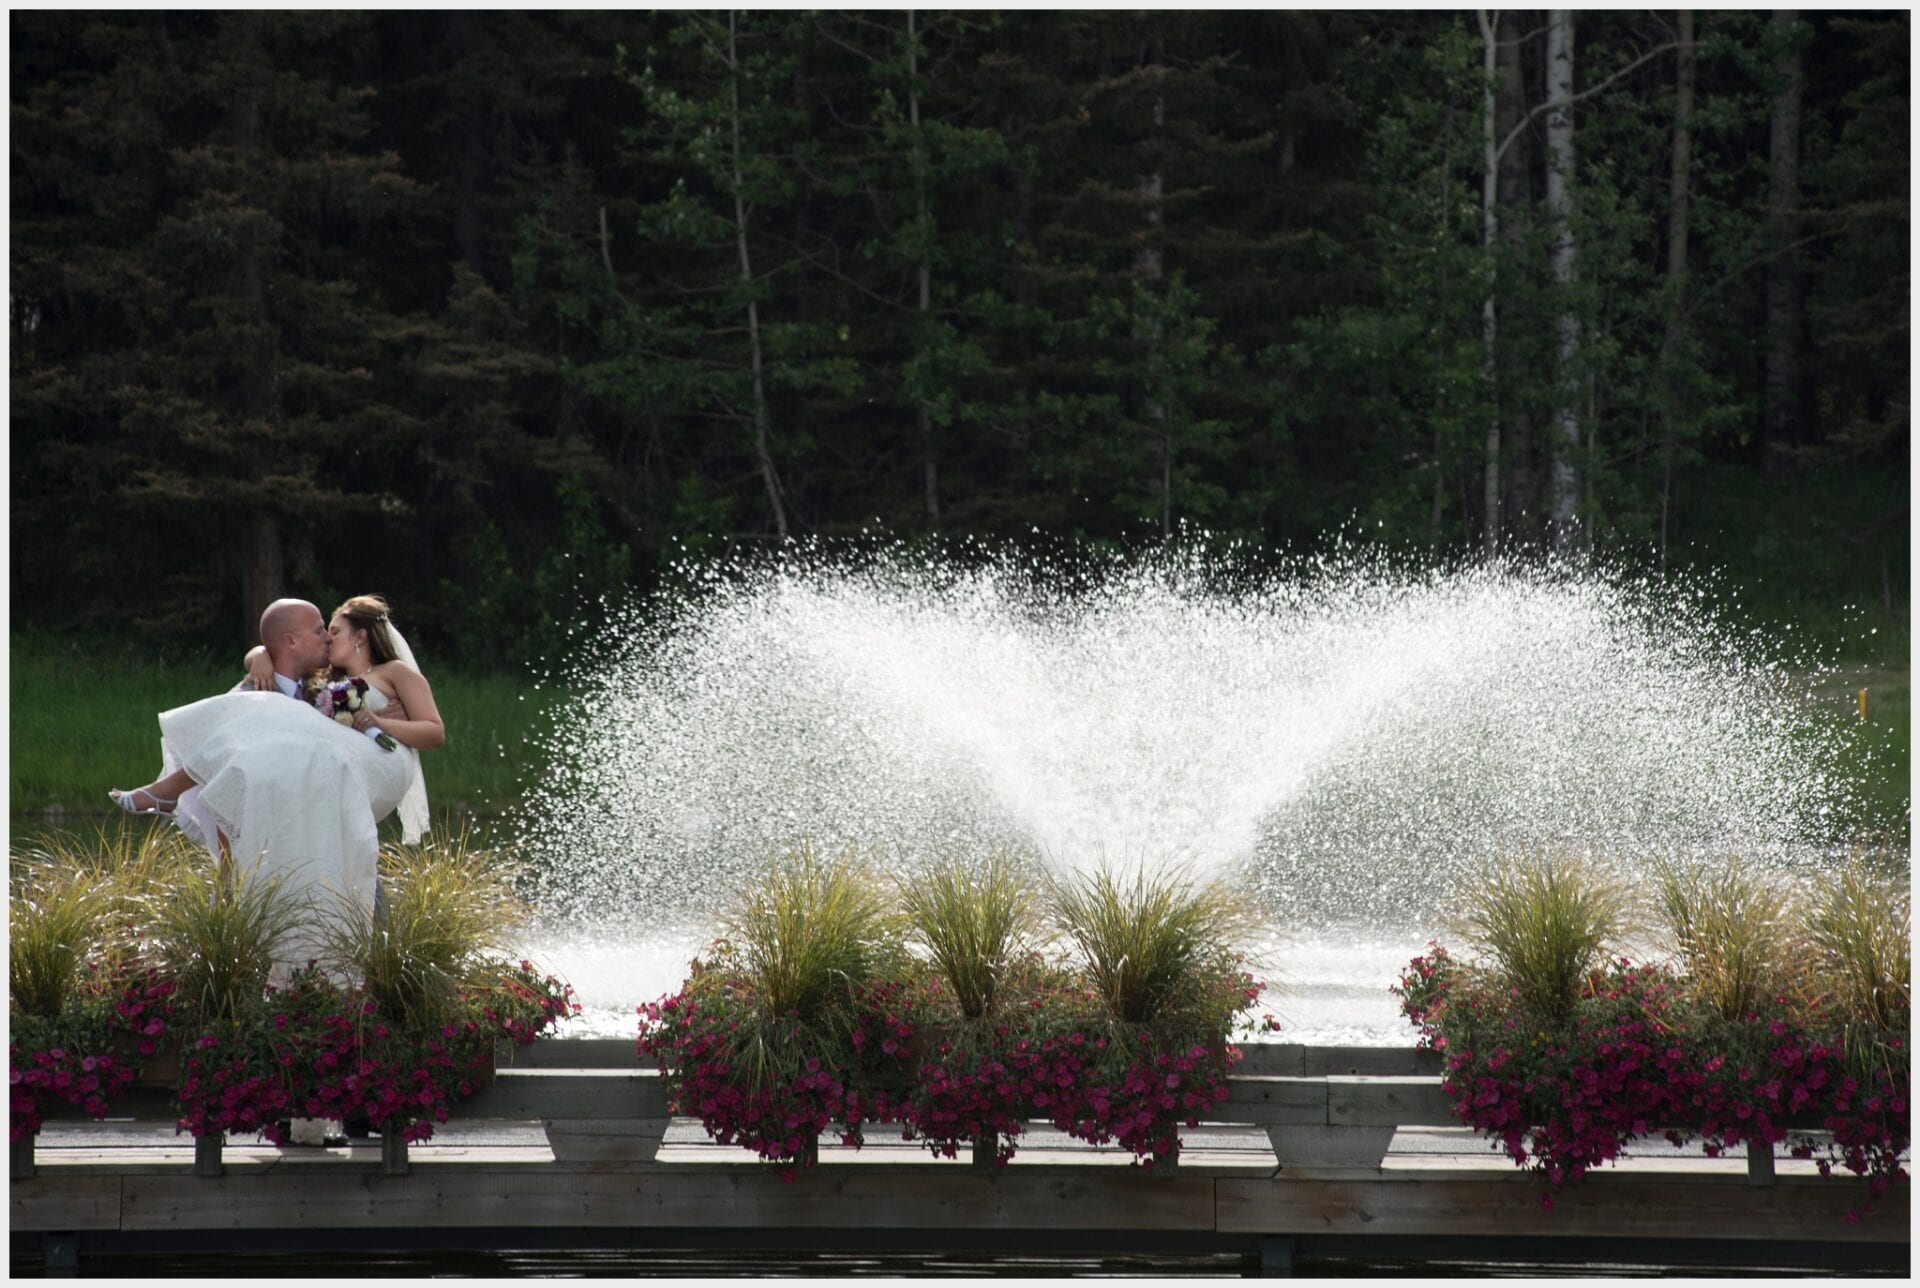 008-Calgary-Priddis Greens Golf and Country Club Wedding_fountain_Photography-